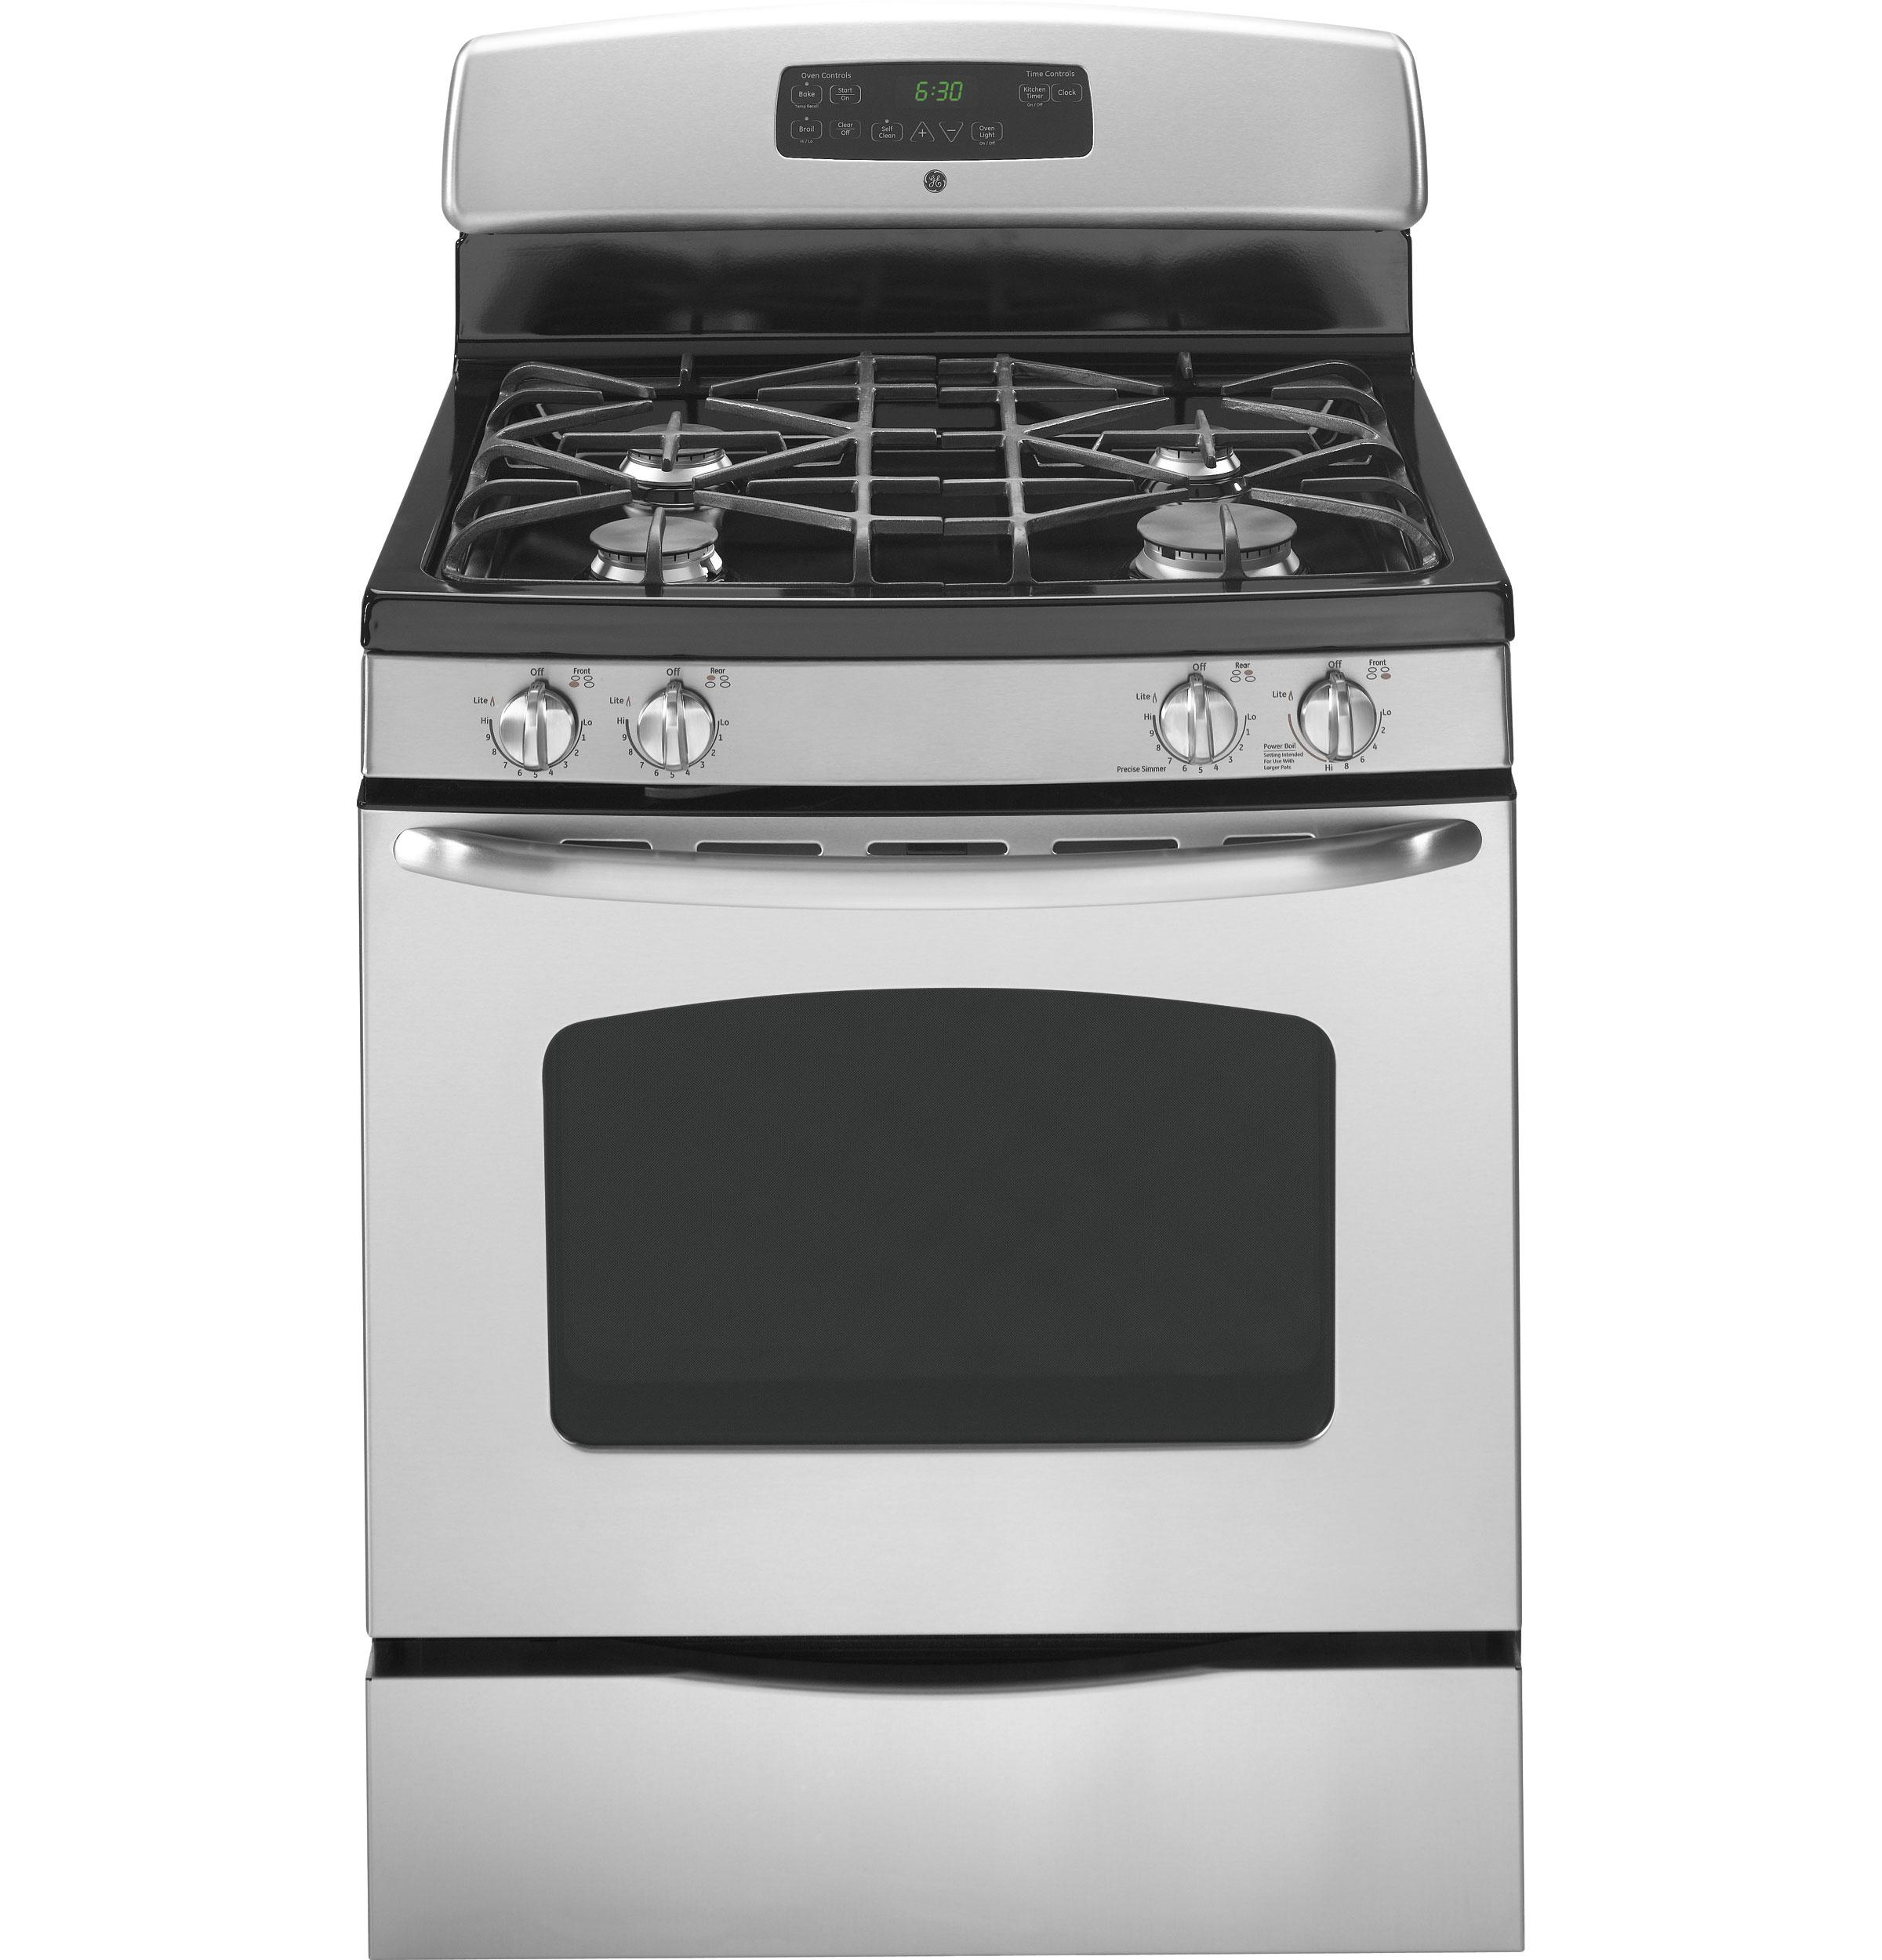 General Electric Stoves ~ Jgb sepss general electric gas ranges